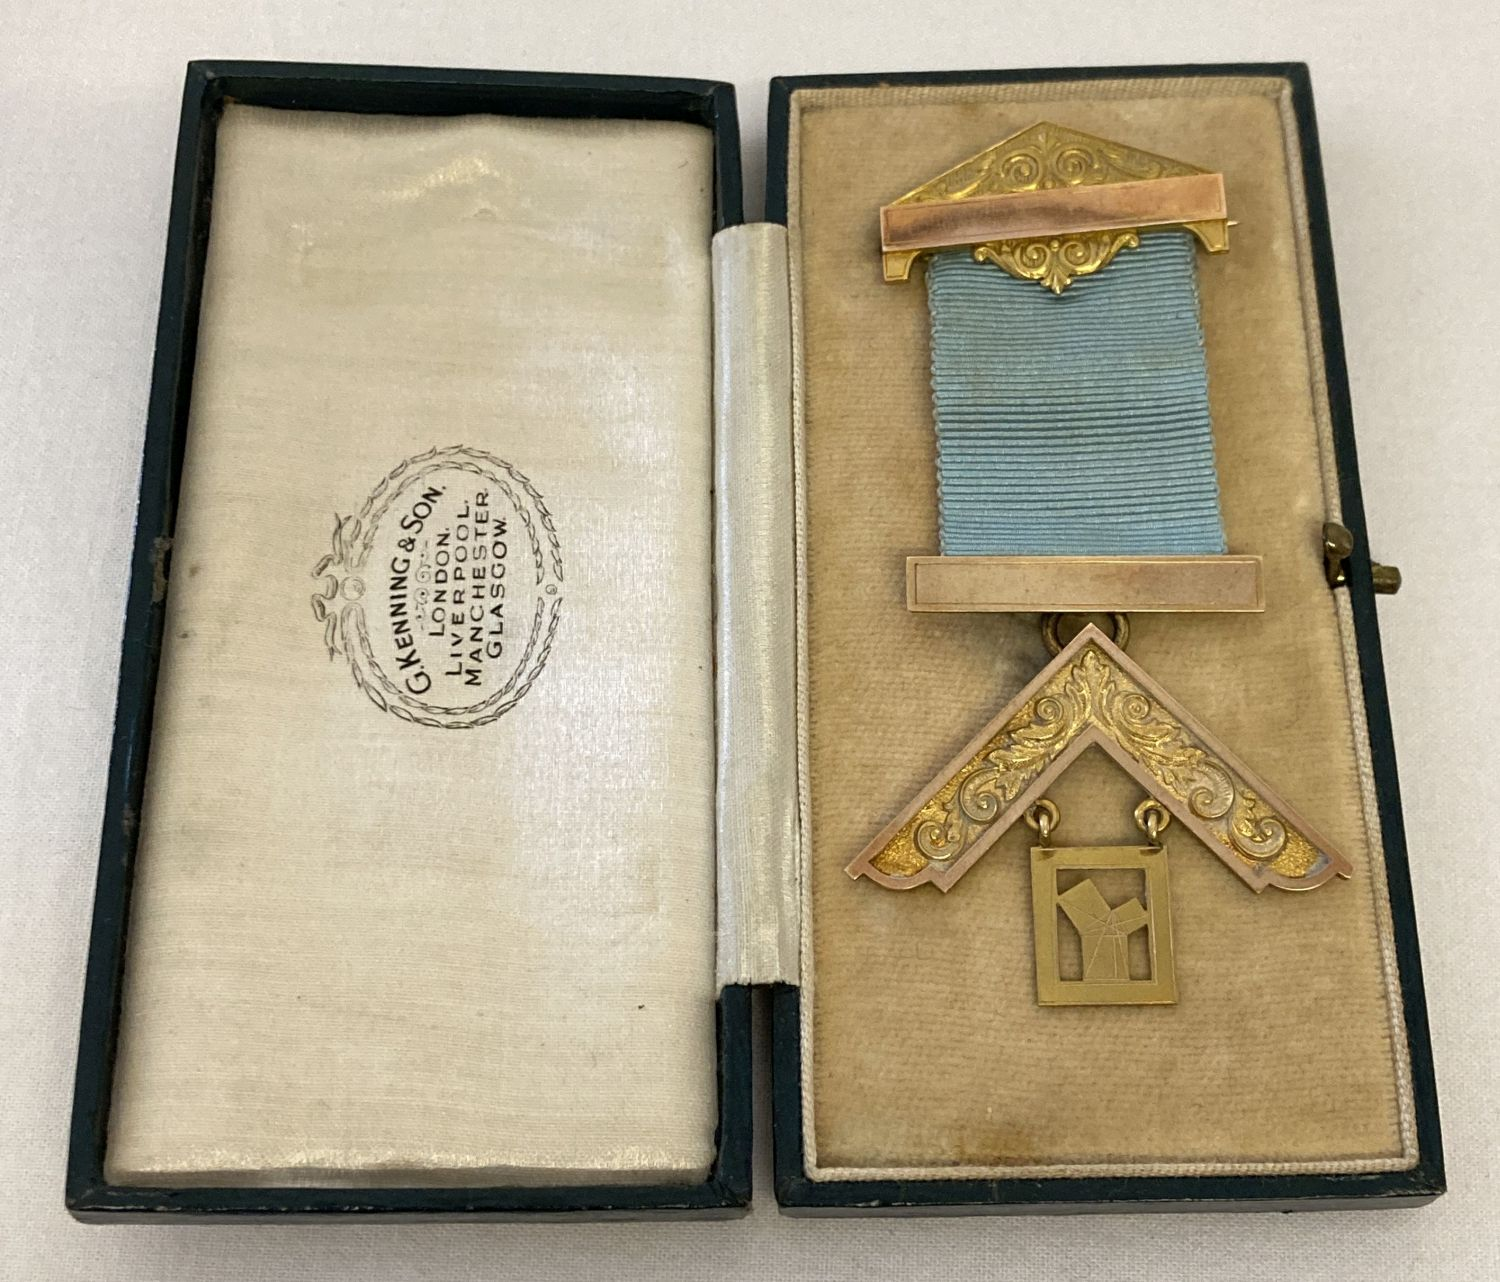 A boxed 9ct gold Masonic jewel by G kenning & Son.